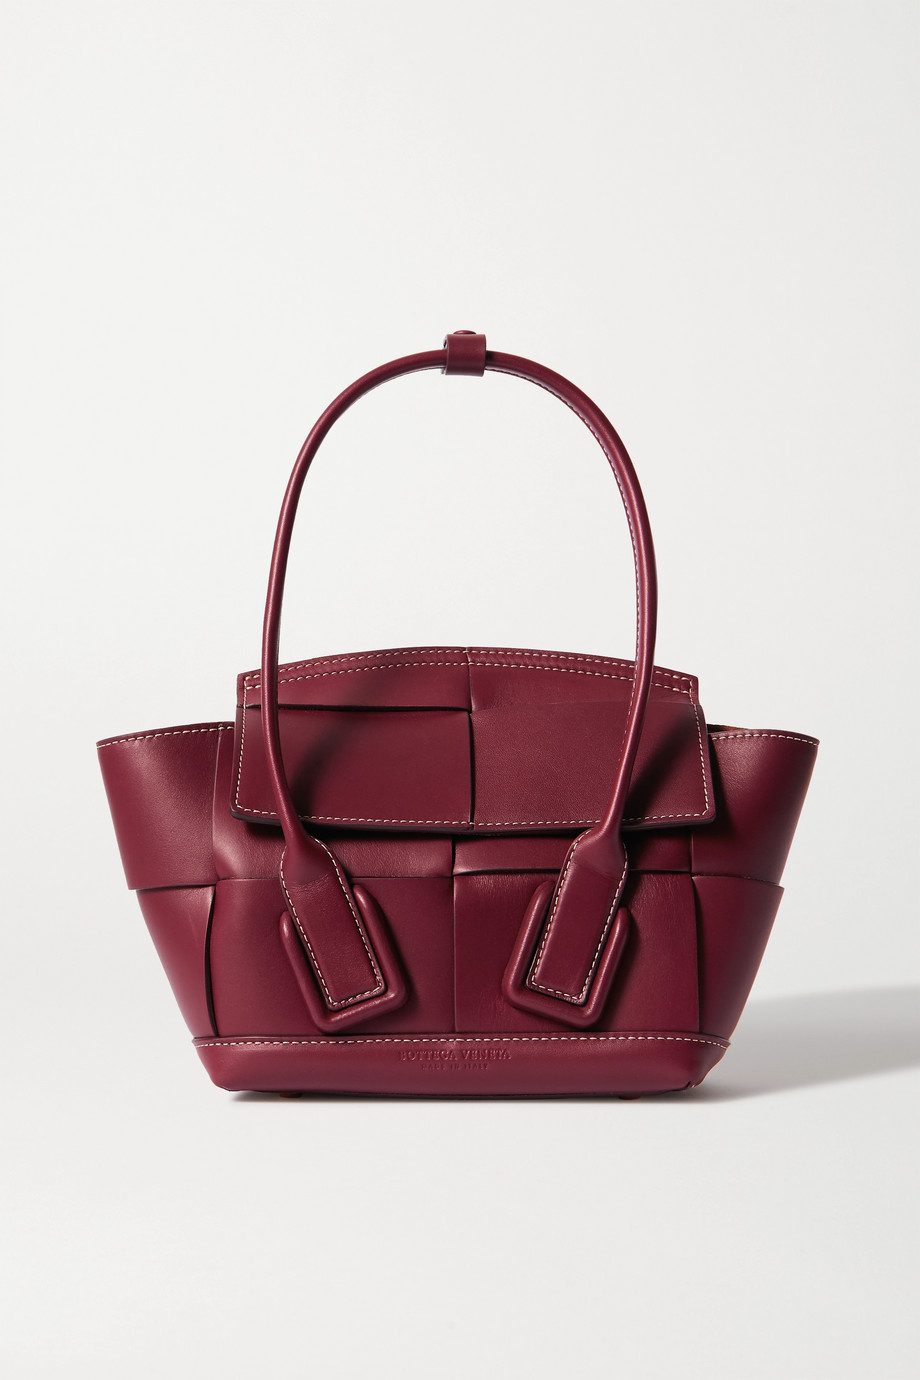 BOTTEGA VENETA Arco mini intrecciato leather tote